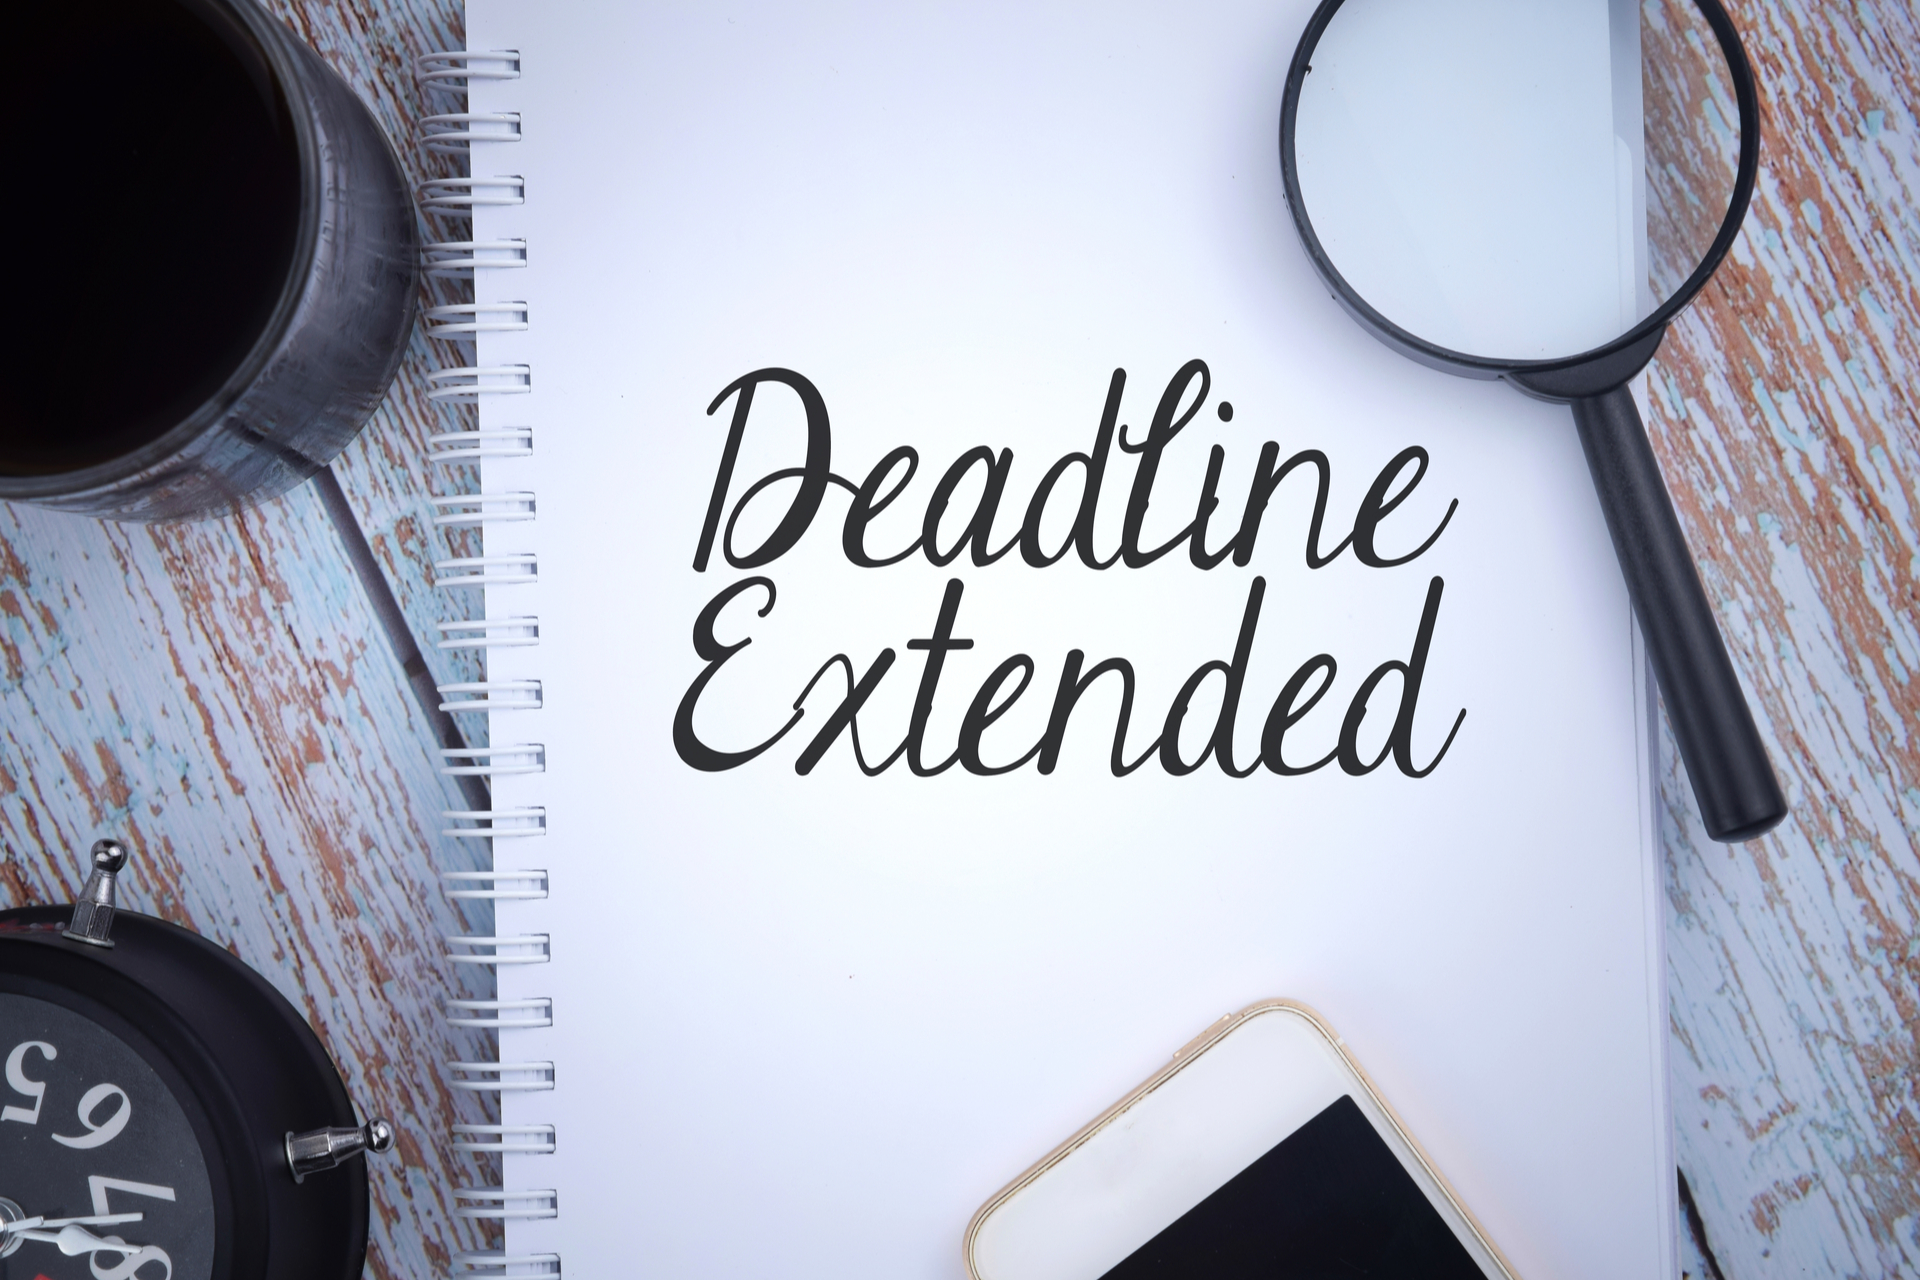 student load eviction extension